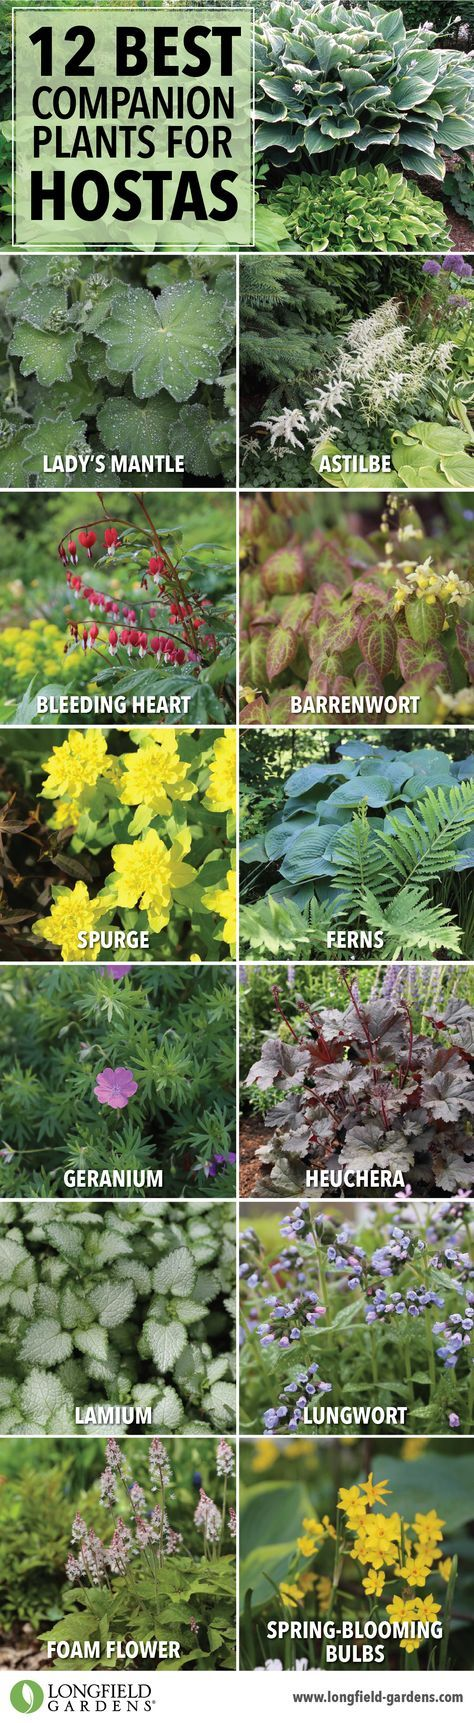 Hostas have no trouble holding their own in a shady garden. Yet there are many other shade loving perennials that make excellent companions. #barbschwarz #barbschwarzgarden #barbschwarzblog